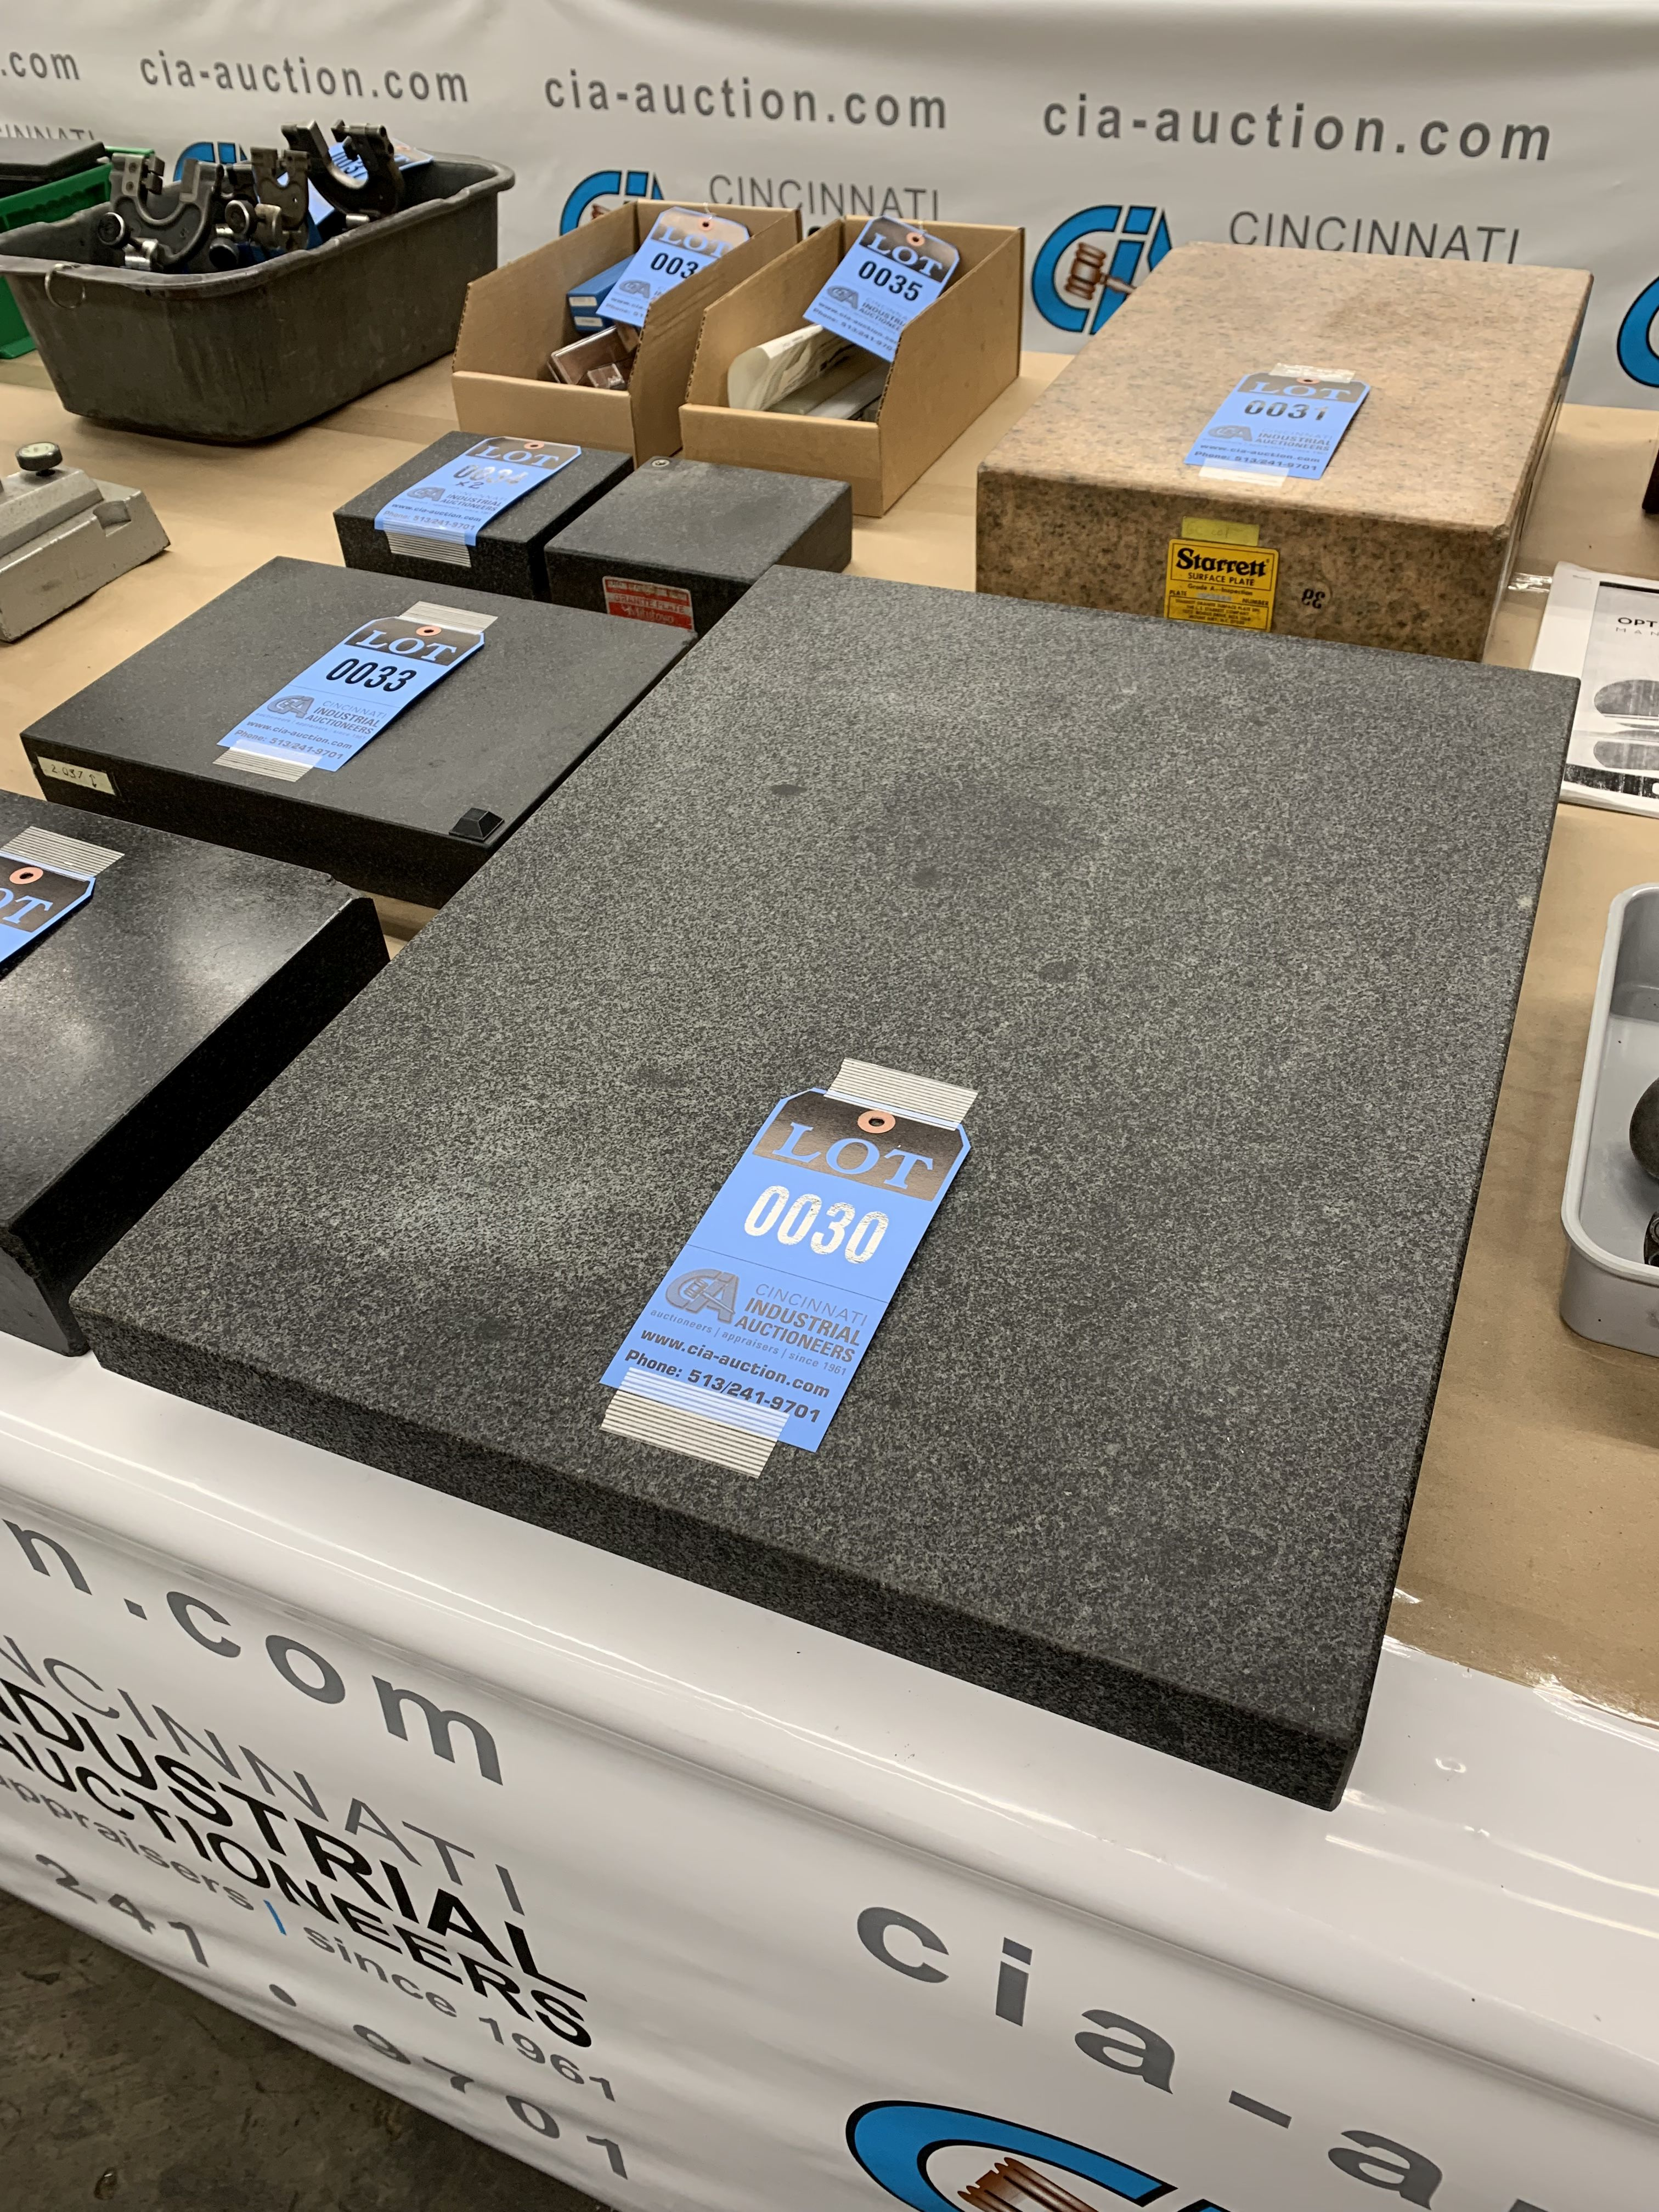 """Lot 30 - 18"""" X 24"""" X 3"""" THICK TWO LEDGE BLACK GRANITE SURFACE PLATE"""